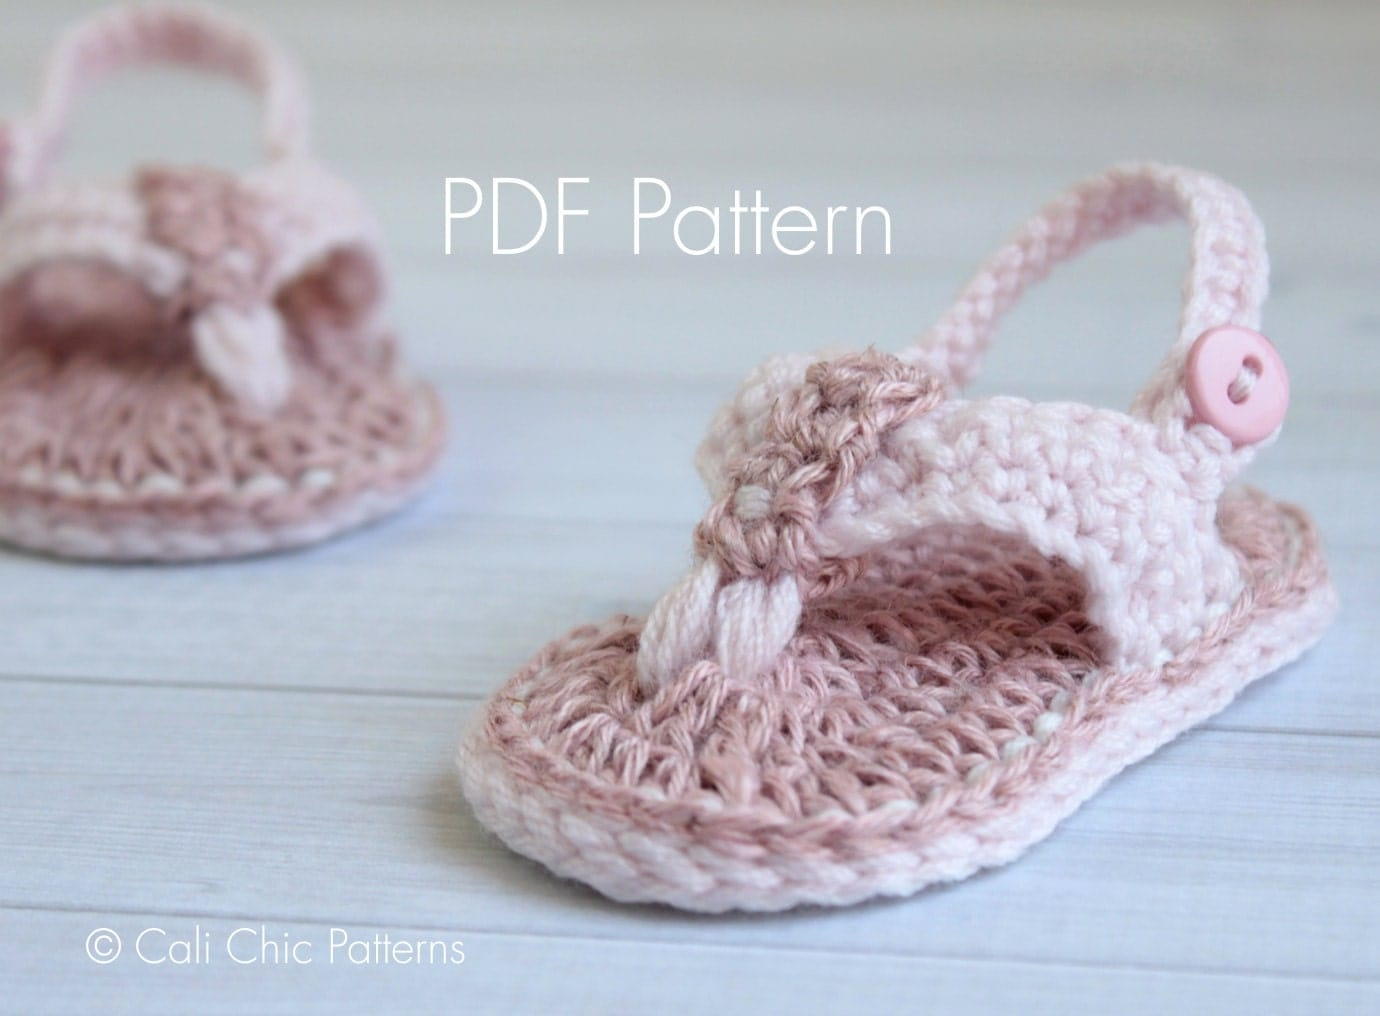 Free Printable Crochet Patterns For Baby Sandals : Crochet PATTERN 312 Malibu Baby flip flops pattern Crochet